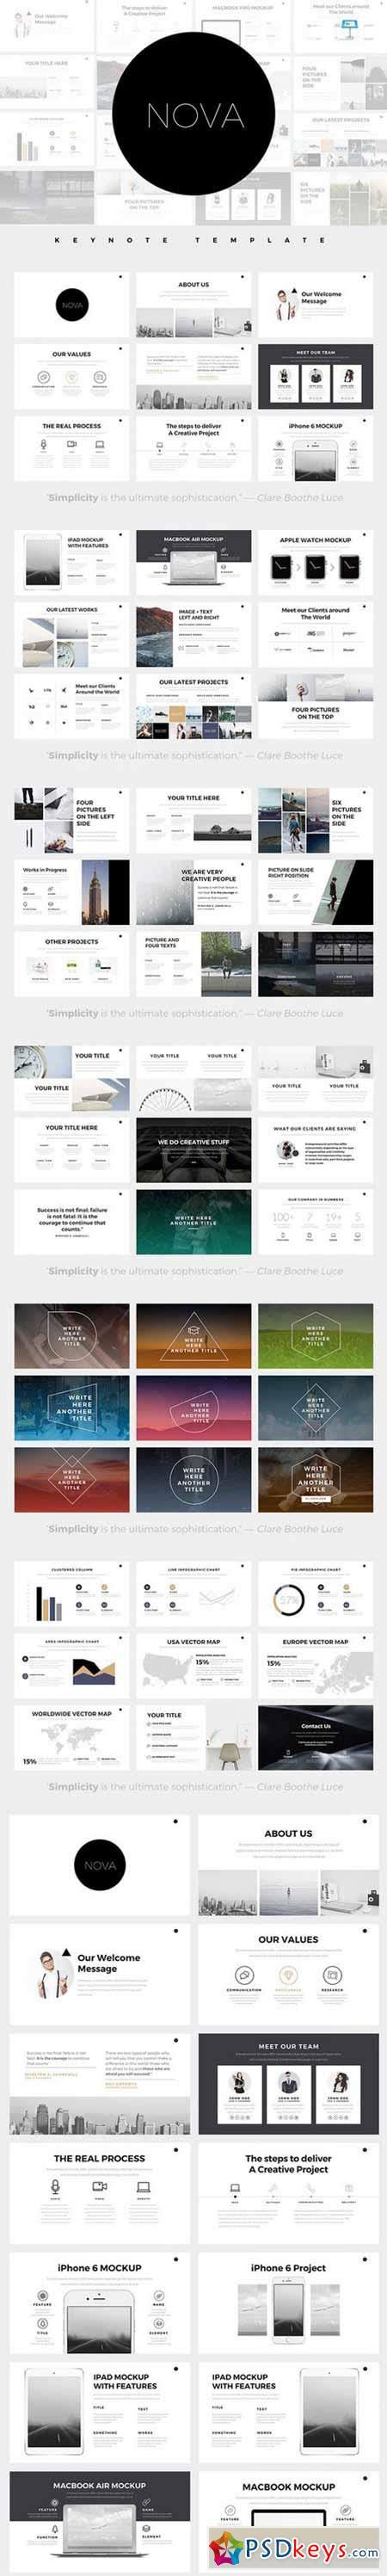 Nova Minimal Keynote Template 597505 187 Free Download Photoshop Vector Stock Image Via Torrent Free Minimal Keynote Template